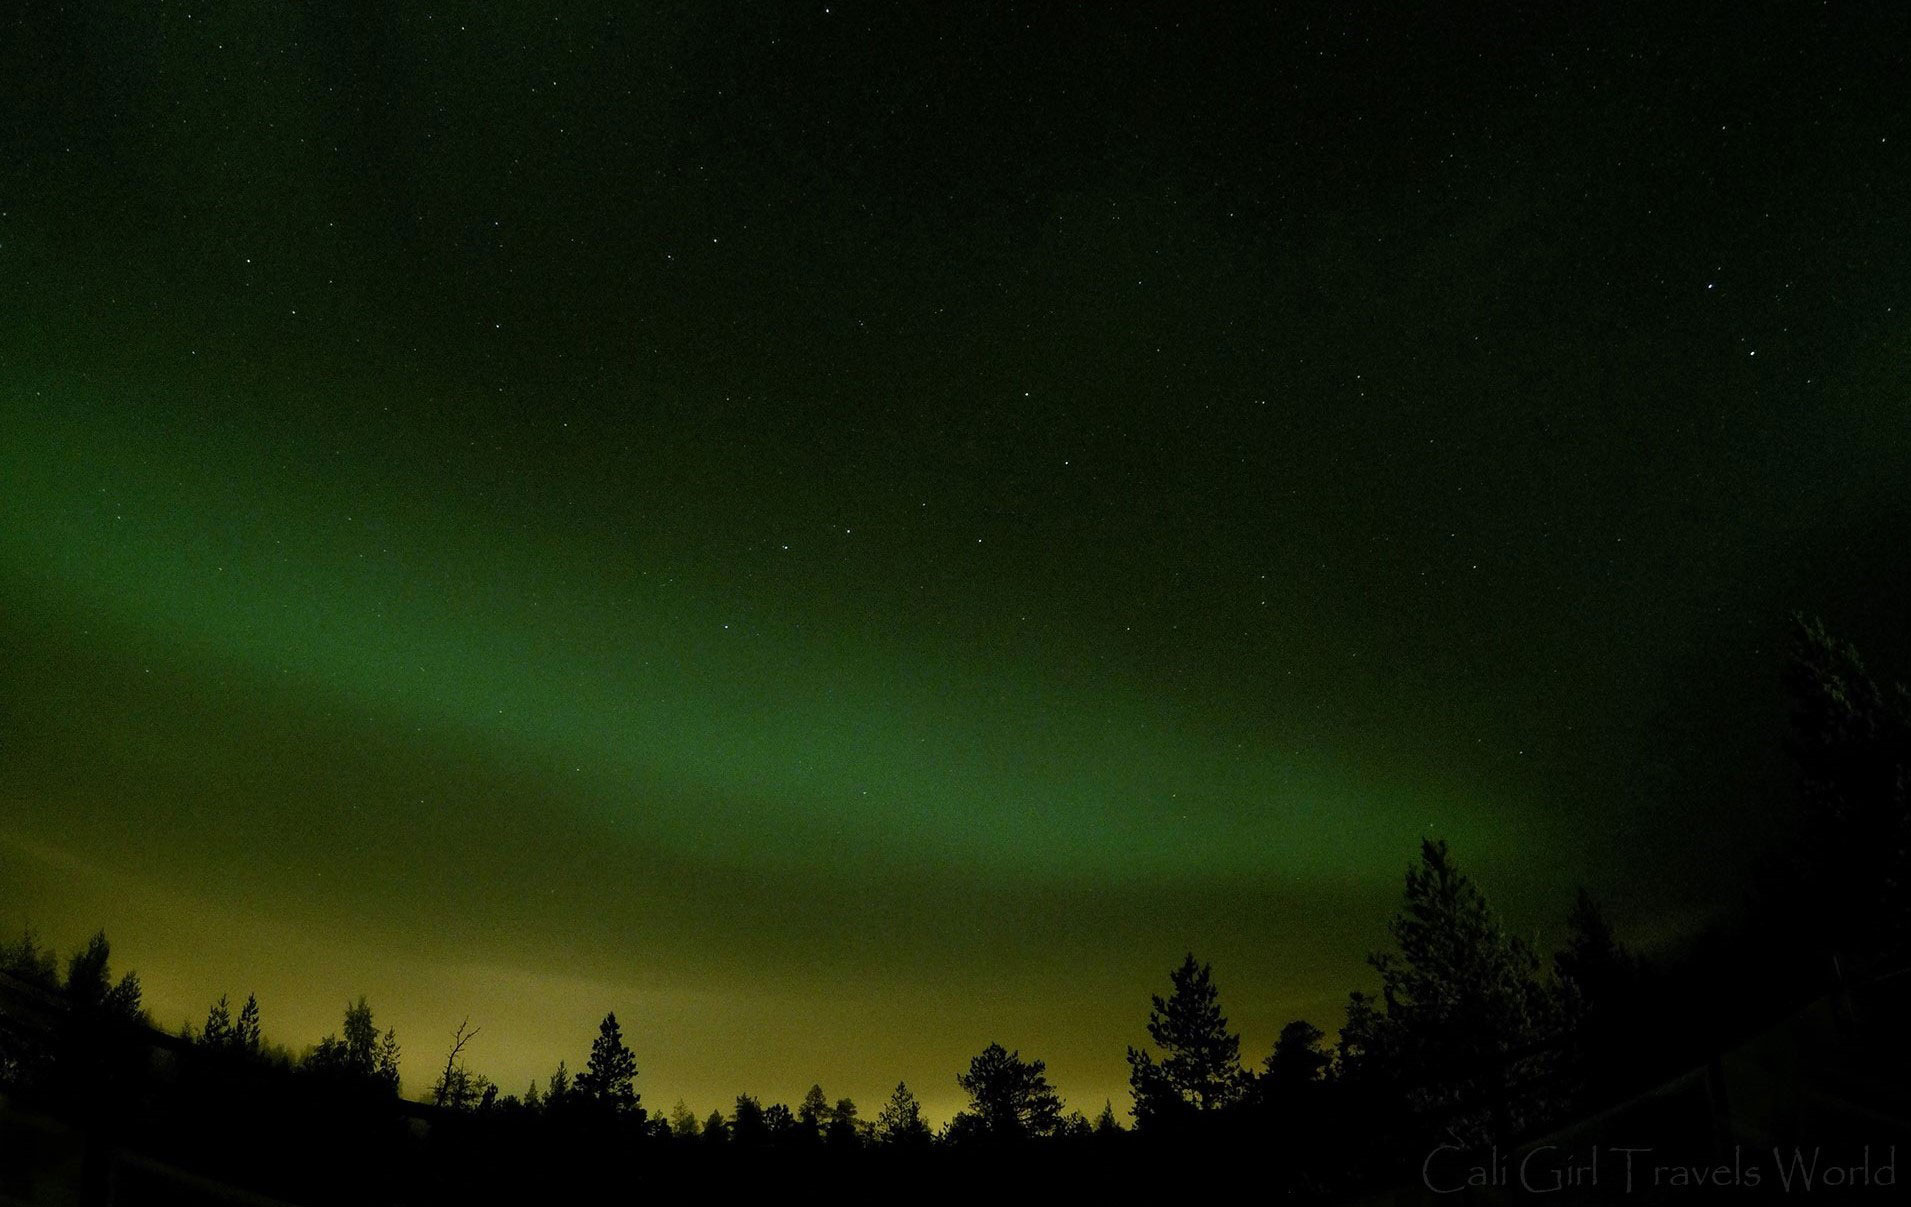 GoPro photo of the northern lights taken in the arctic circle, the aurora borealis is green and yellow.